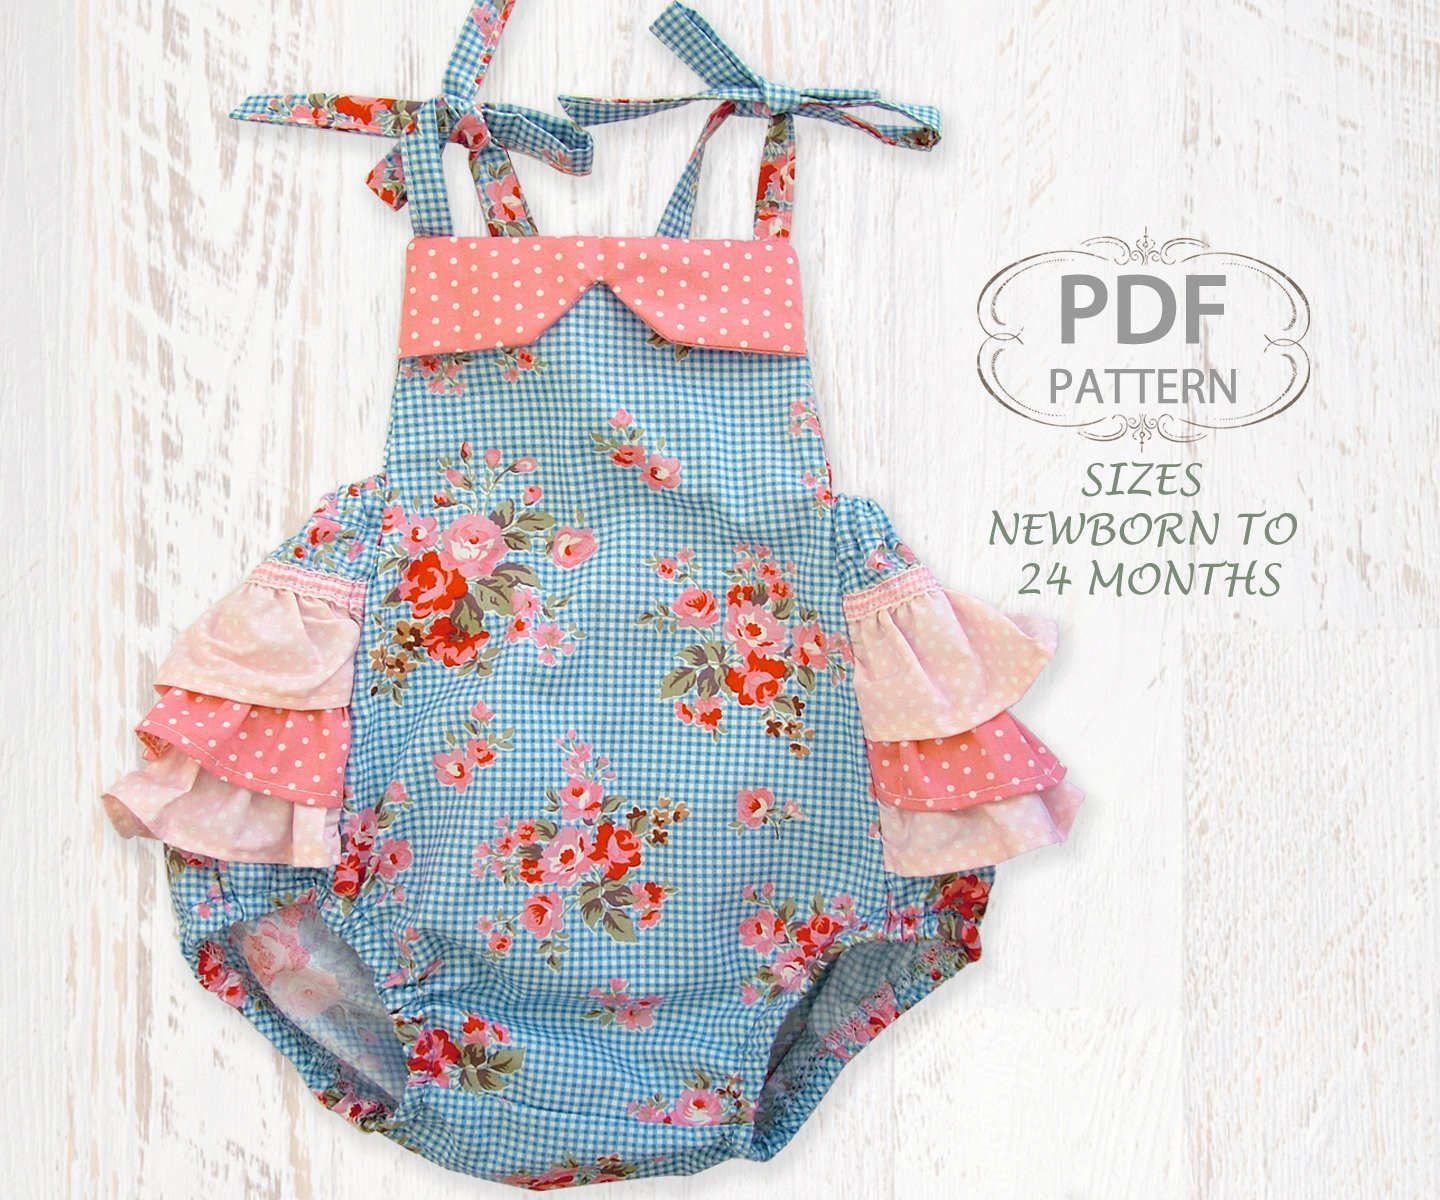 Baby Clothes Patterns Unique Baby Sewing Pattern for Romper Pdf Sewing Pattern for Baby Of Wonderful 46 Pictures Baby Clothes Patterns